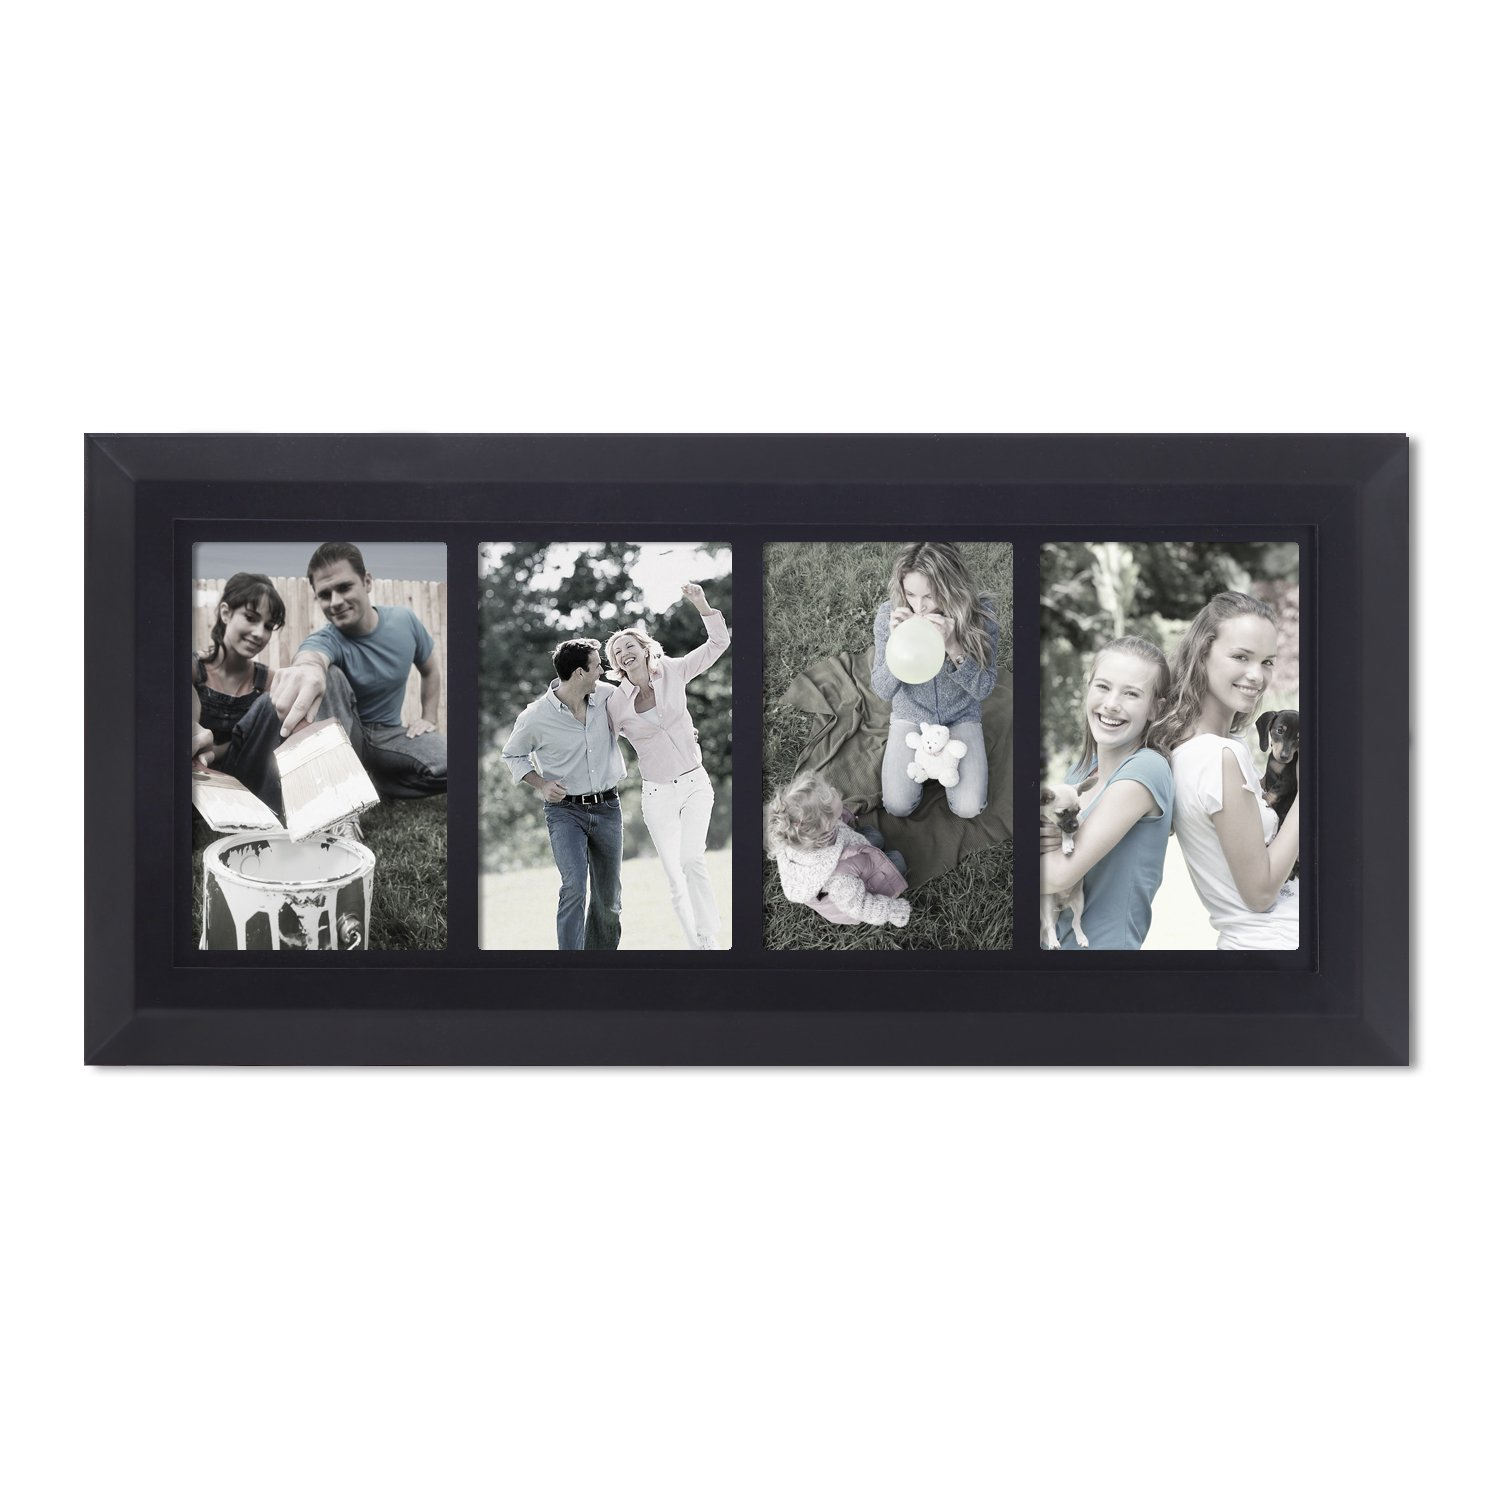 Adeco 4 Opening 4x6 Quot Black Wood Bevelled Wall Collage